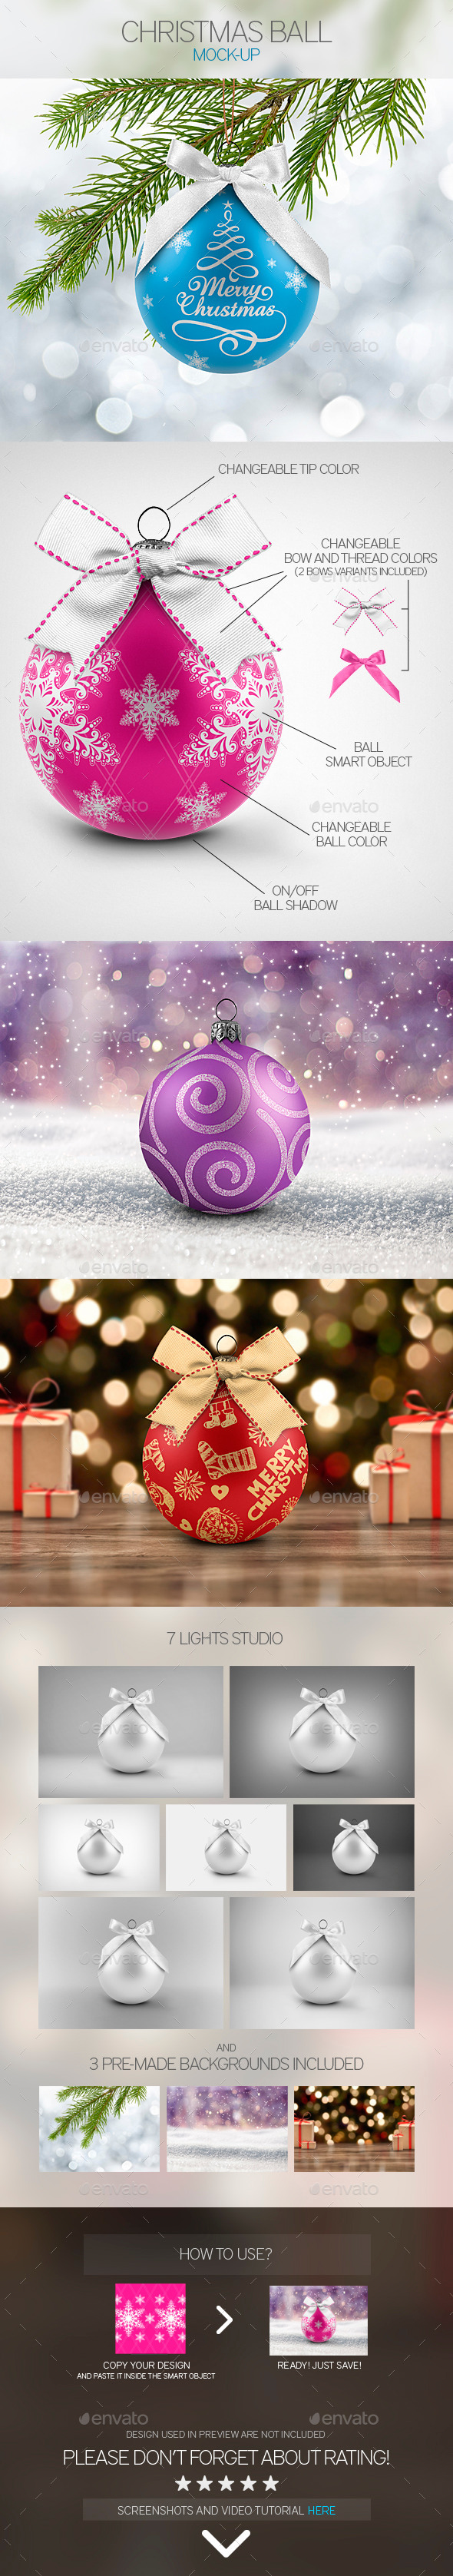 GraphicRiver Christmas Ball Mock-Up 9749507